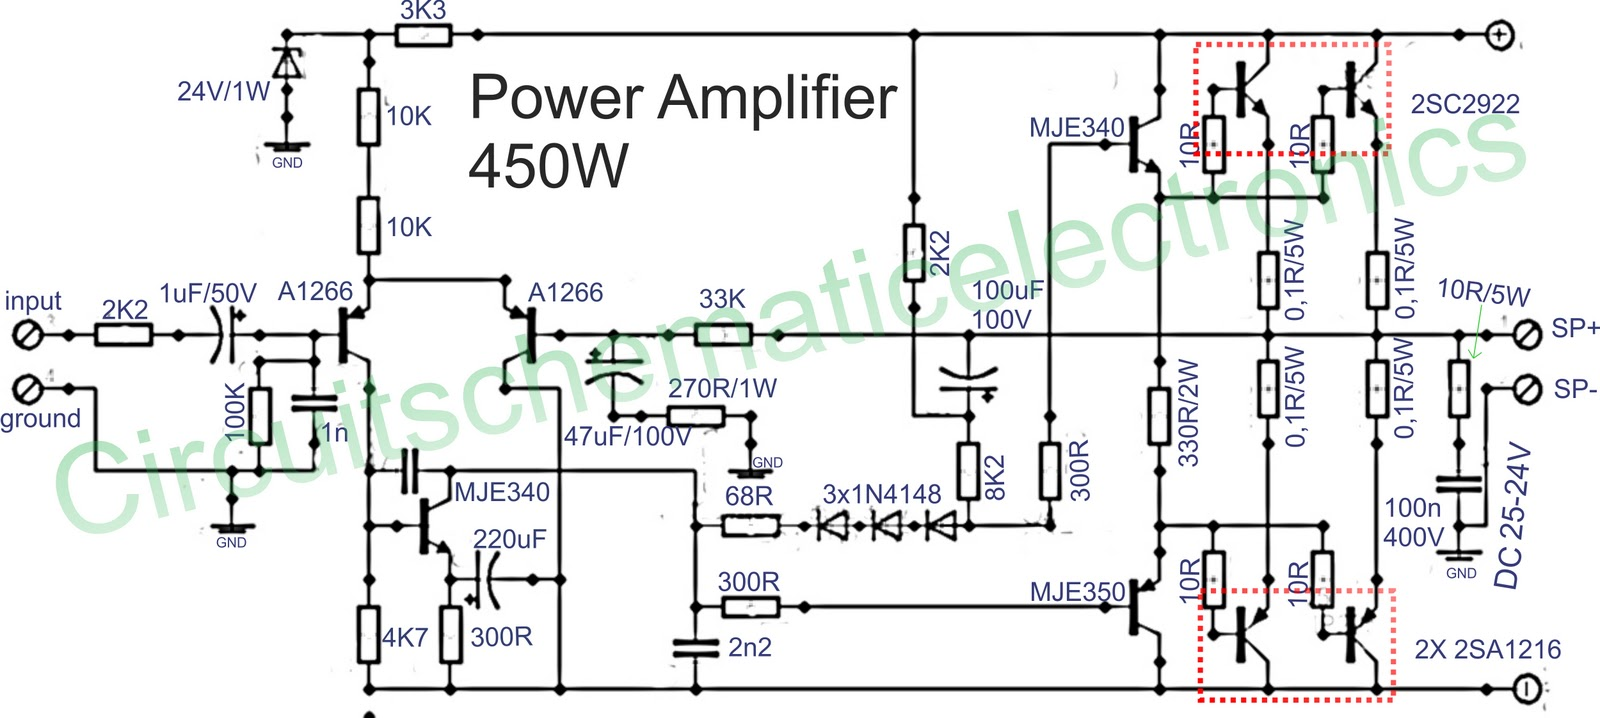 450W amplifier schematics